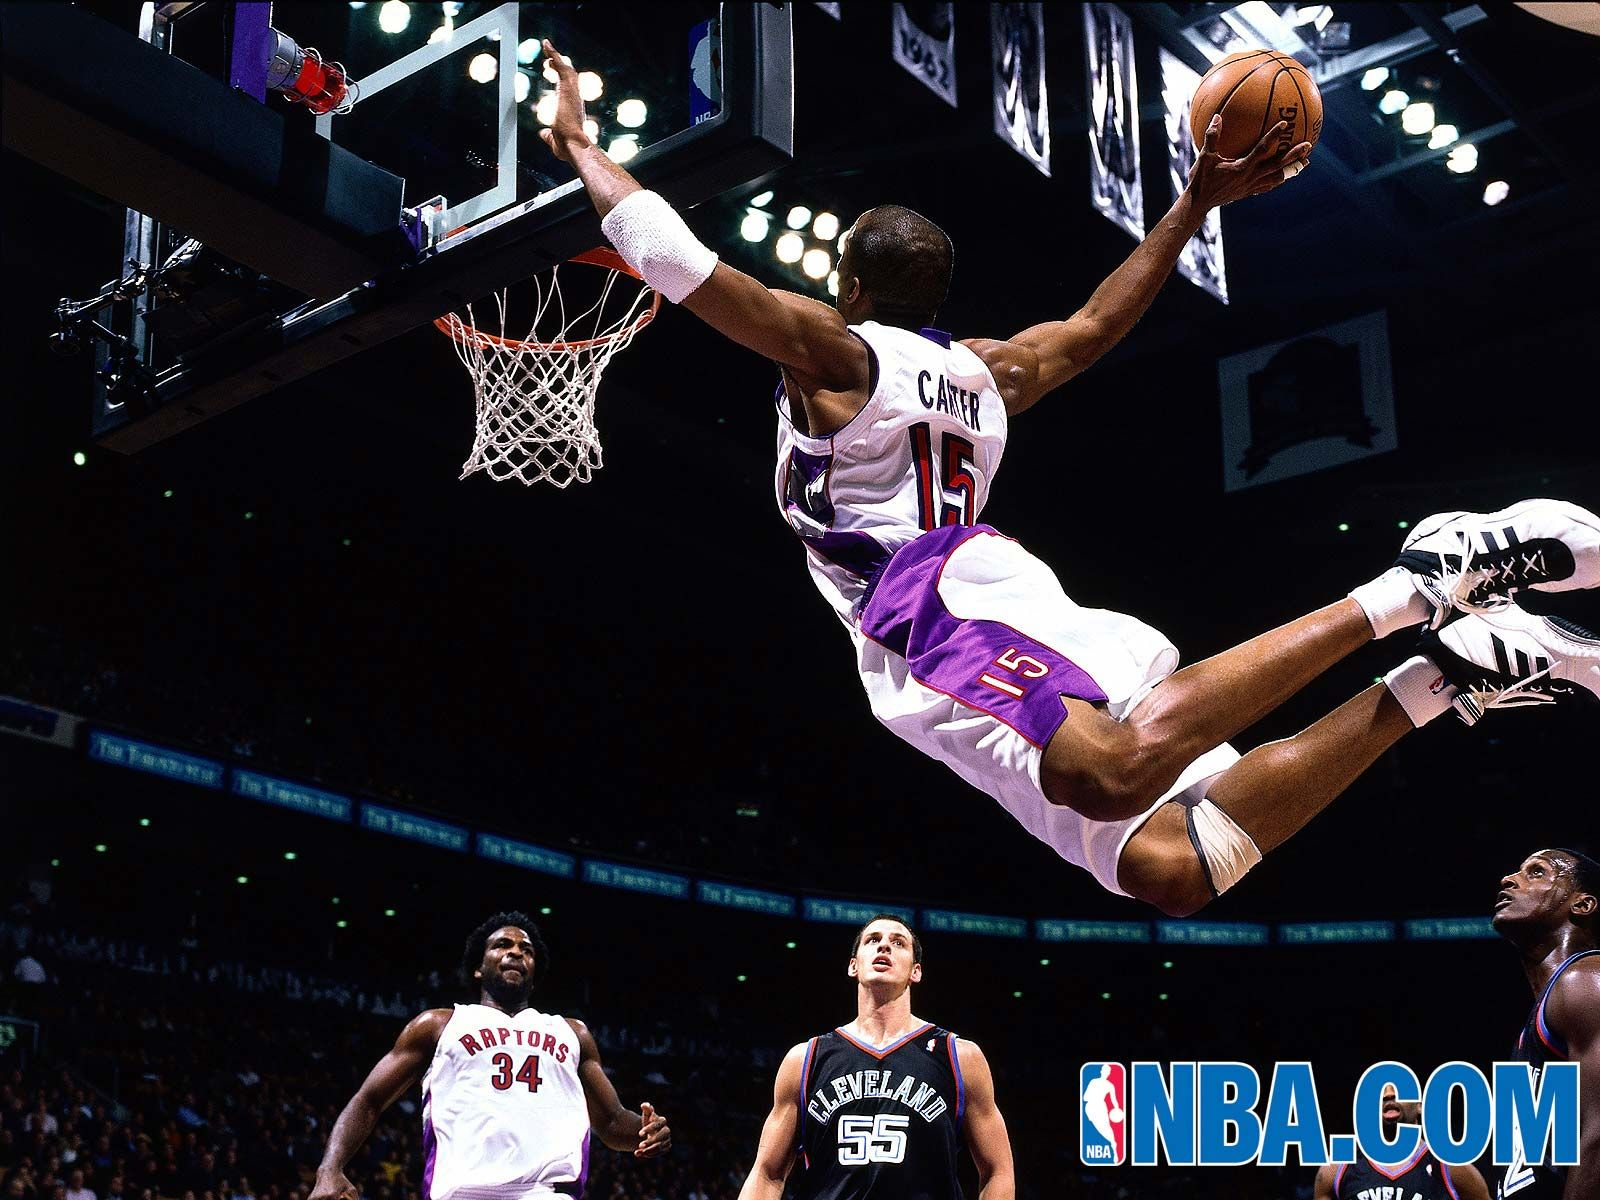 Best Basketball Wallpaper Vince Carter Dunk Wallpapers Sports Sports Basketball Basketball